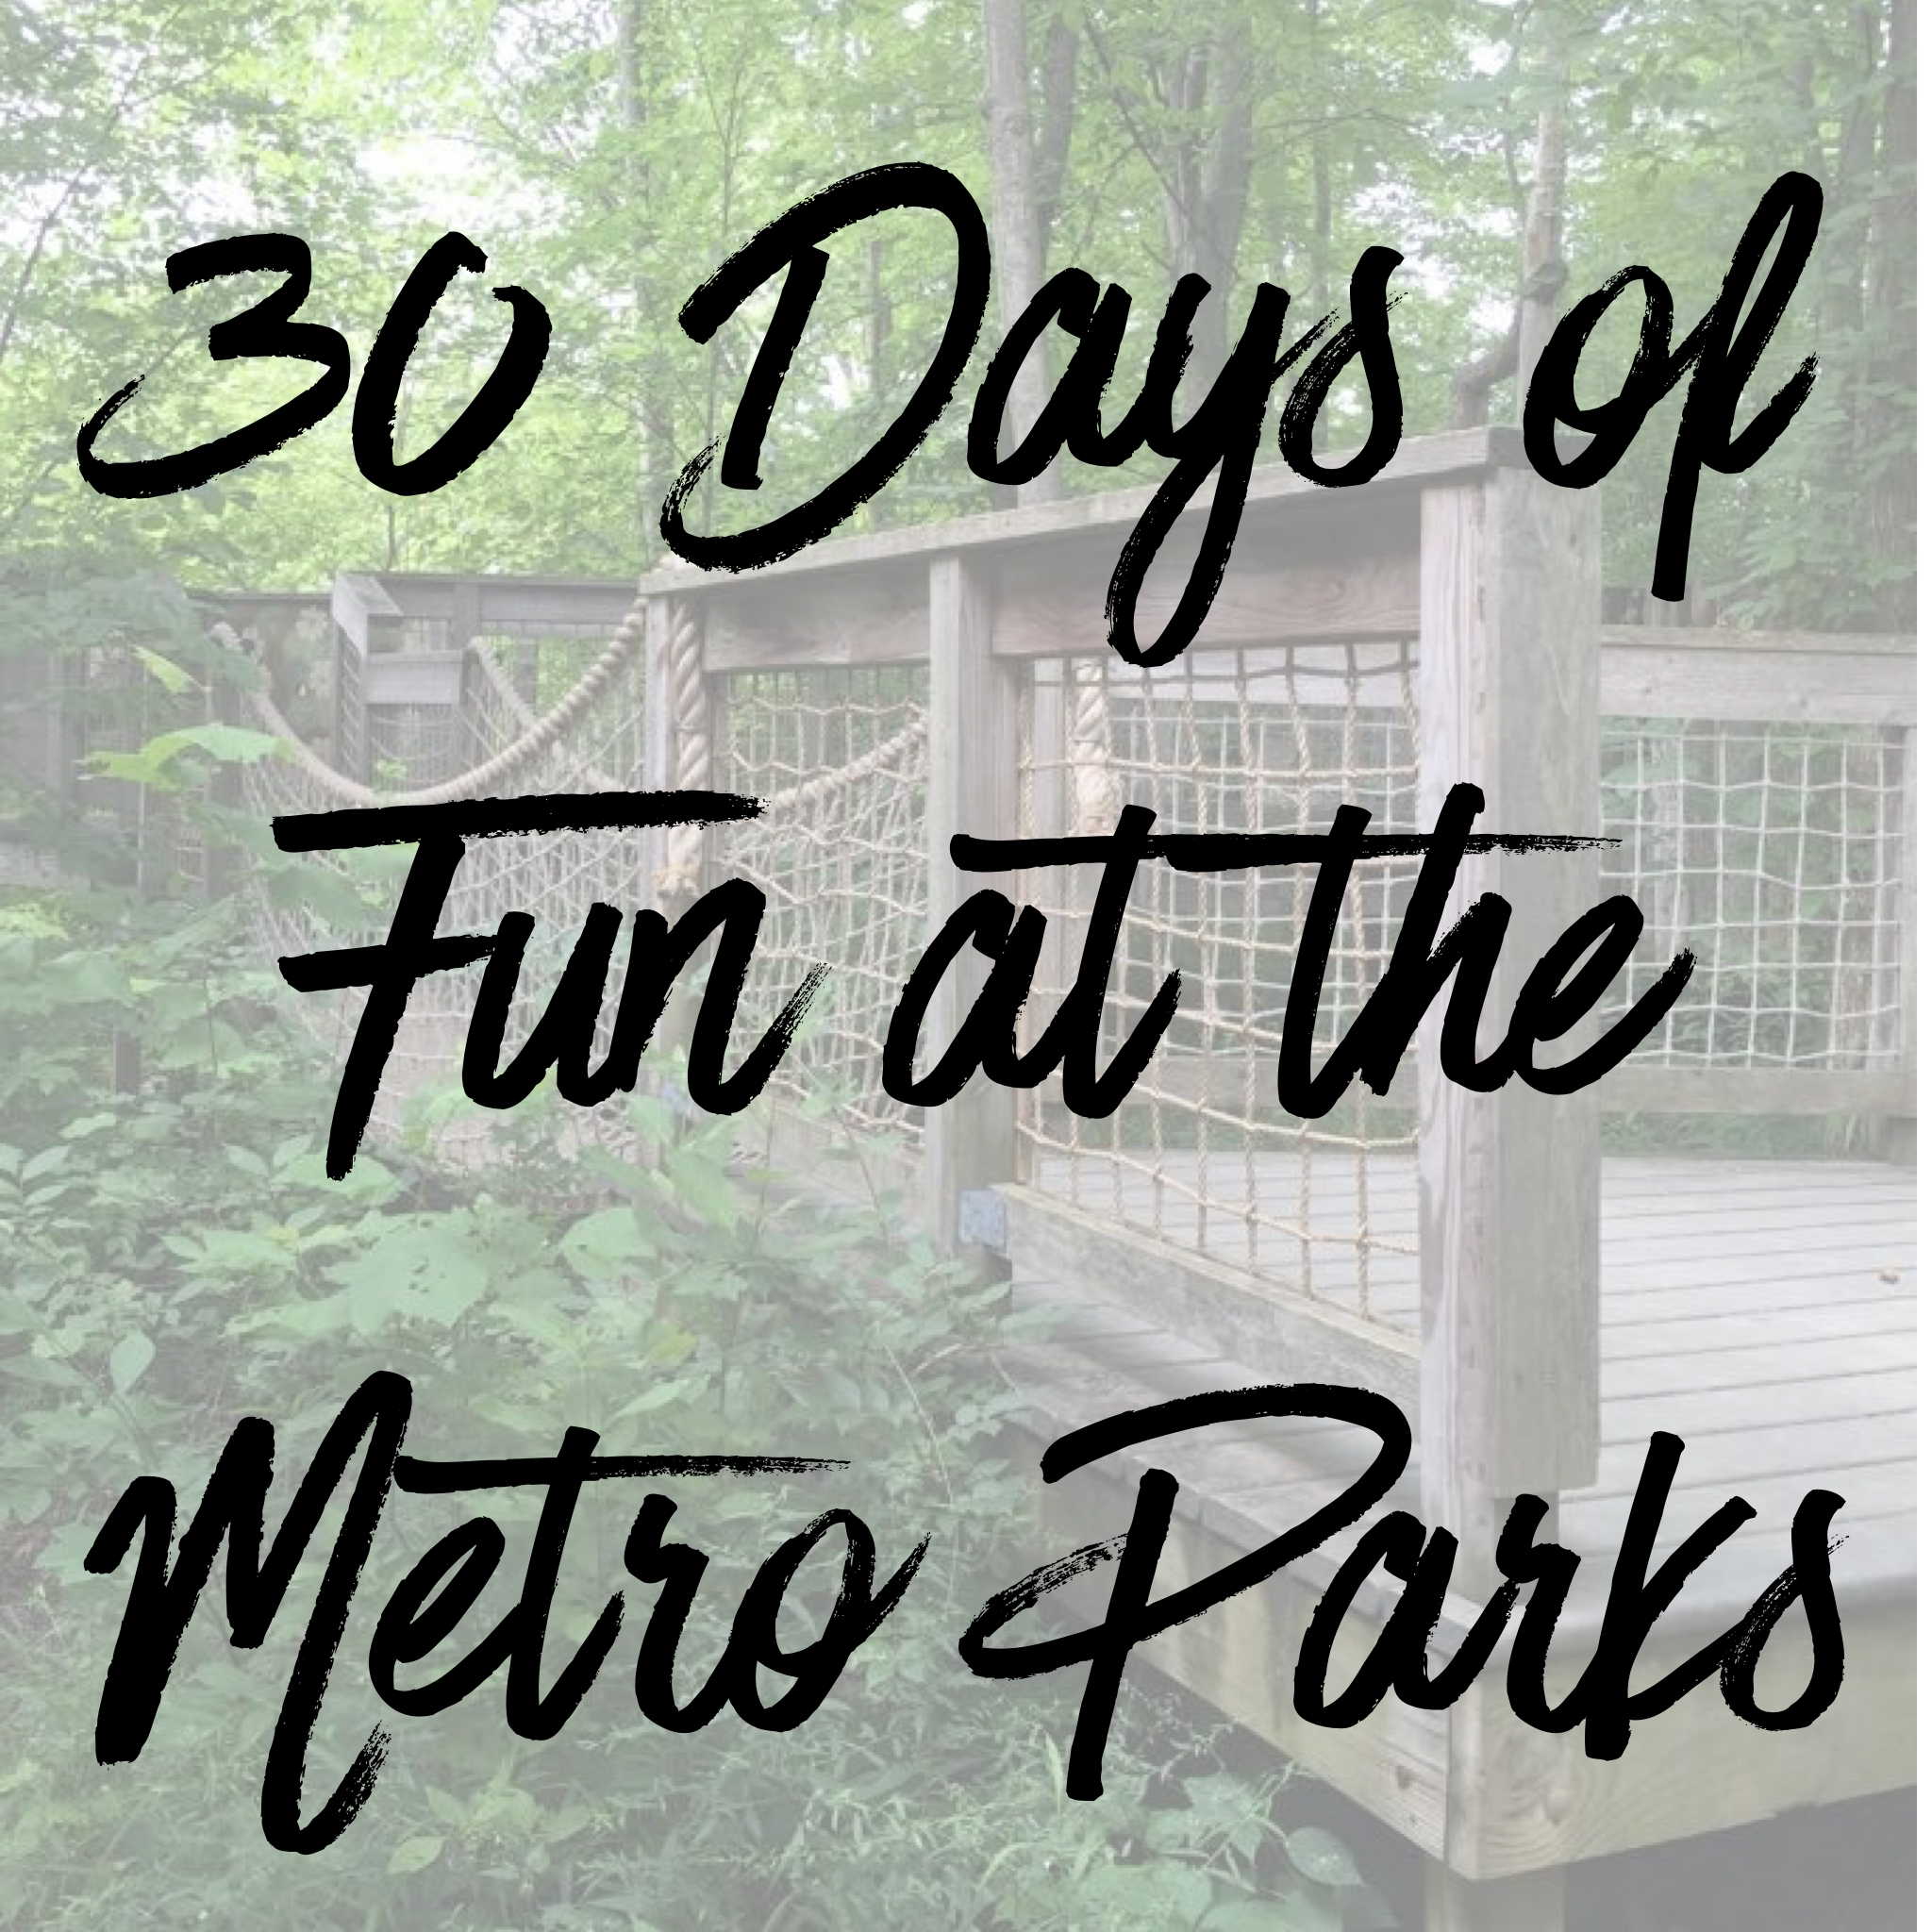 30 Days of Metro Park Fun